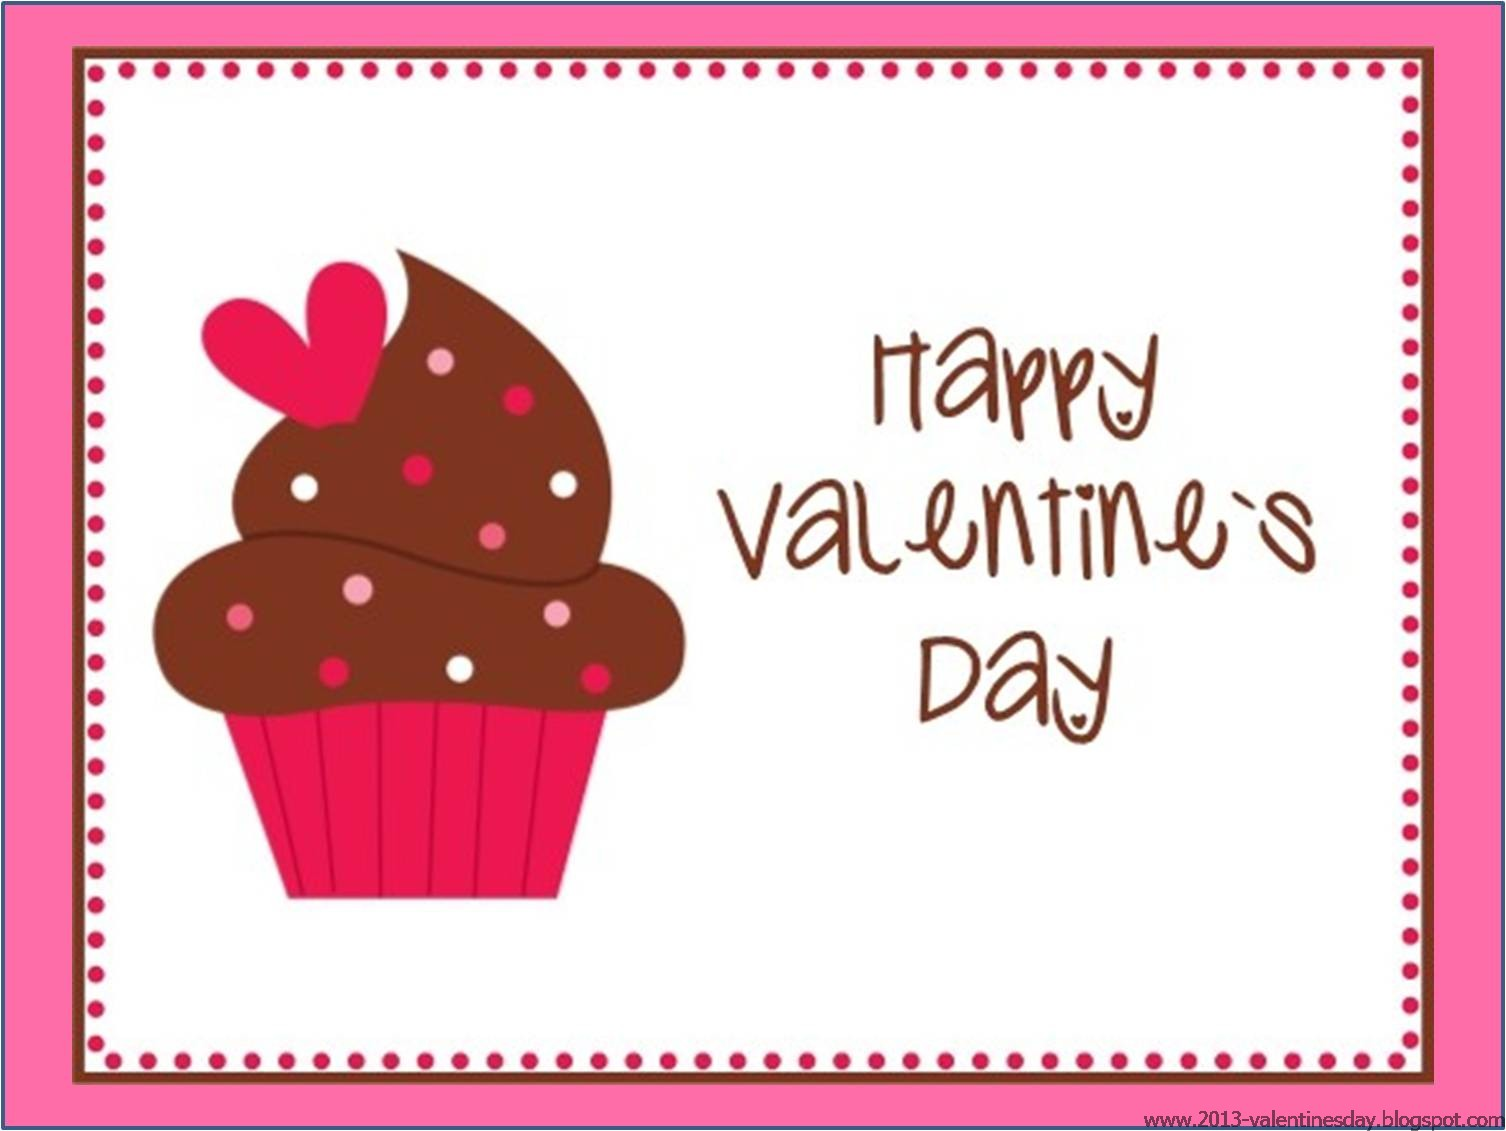 Valentine clipart for facebook jpg free library Happy valentines day clipart for facebook - ClipartFest jpg free library